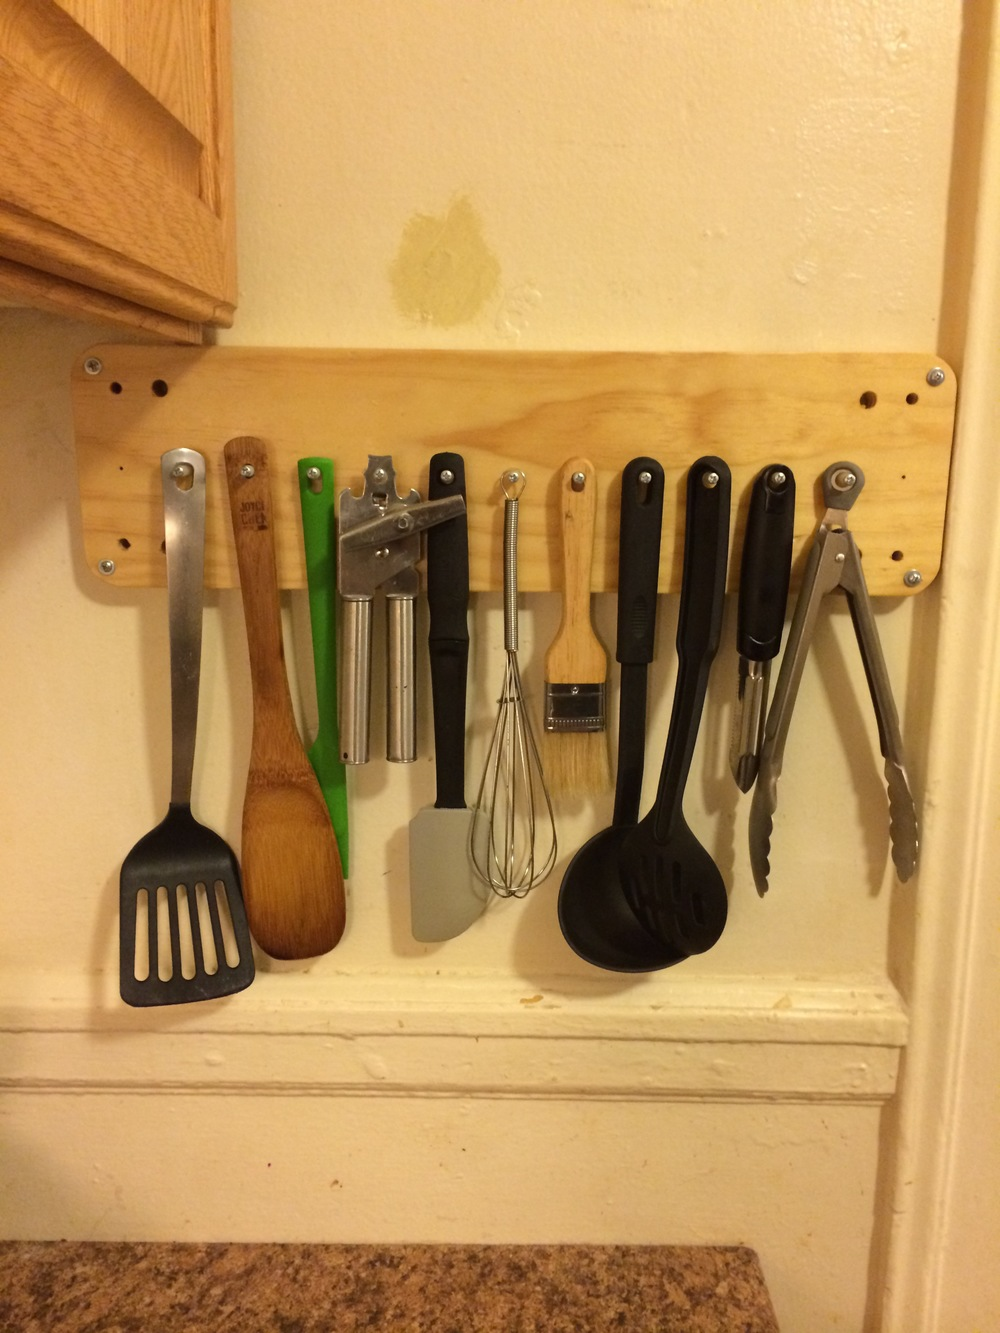 And the impulsively made spatula rack!